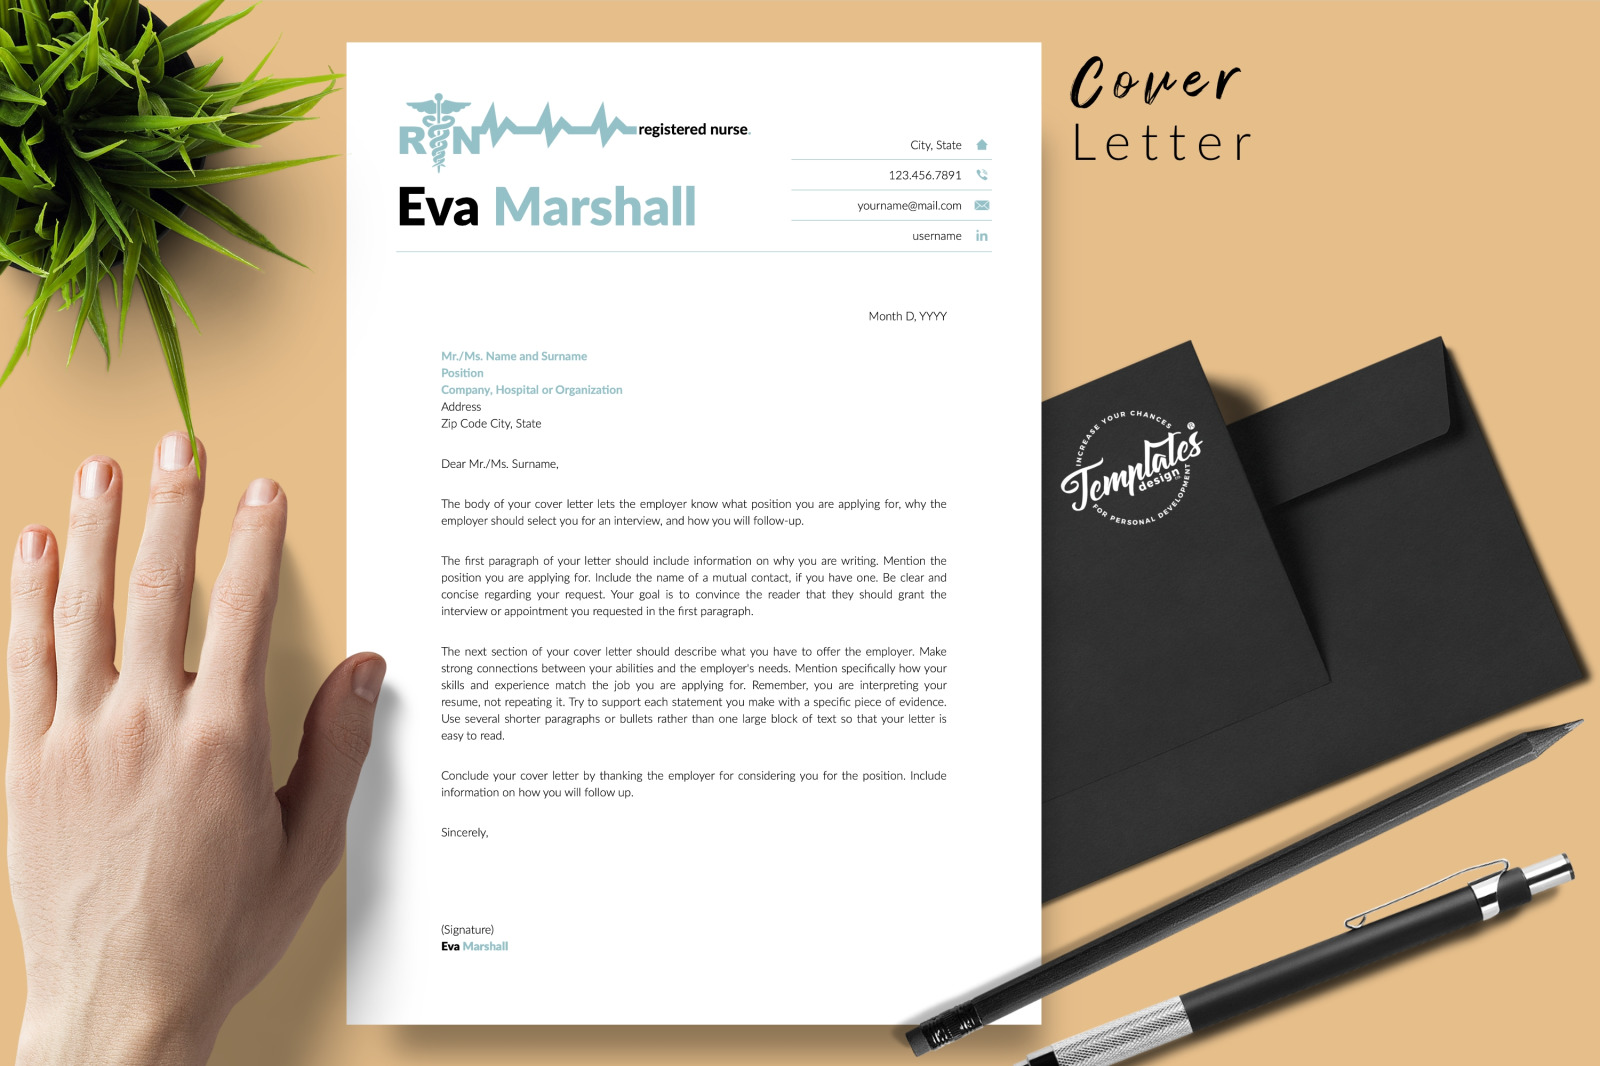 Nurse Resume Template for Microsoft Word & Apple Pages // Eva Marshall CV Design Template